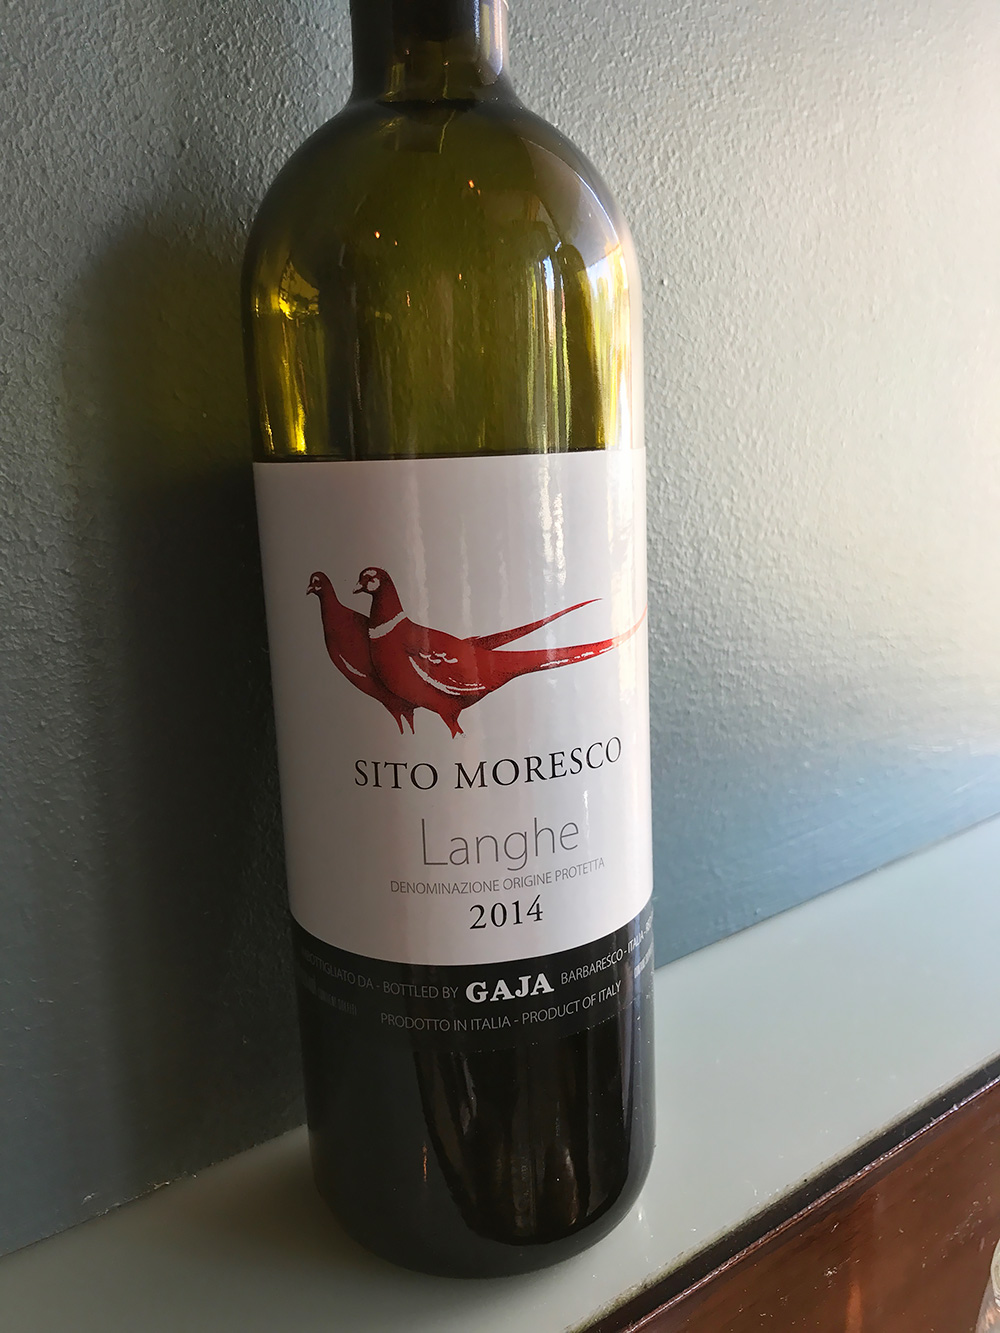 A Gaja Langhe from the well-selected list of Italian red wines.